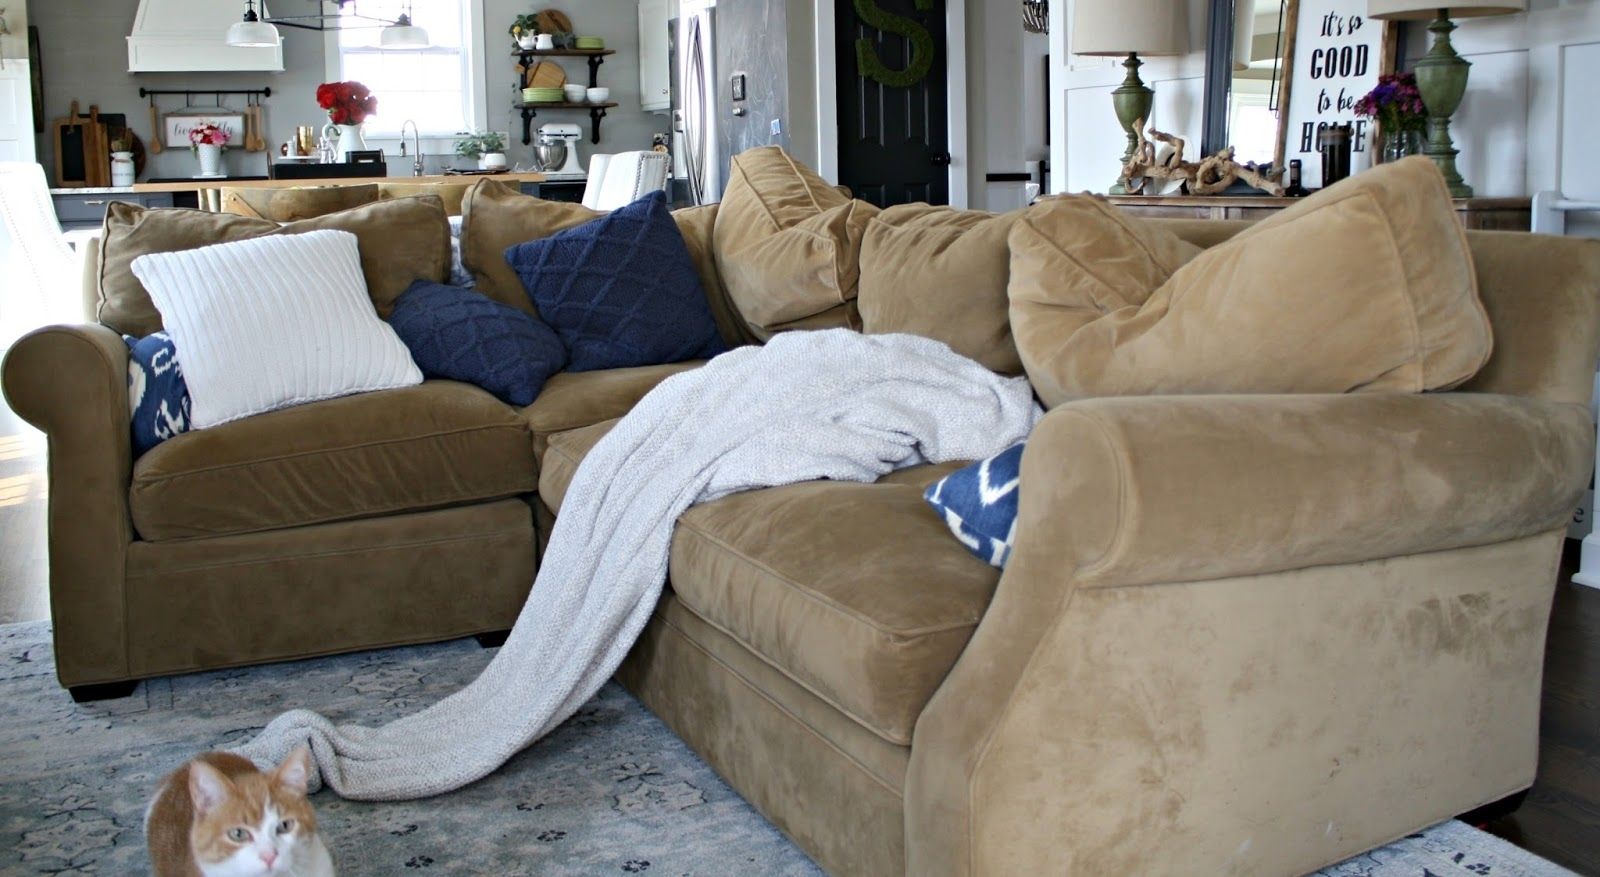 A Review Of Our Most Expensive Purchase! From Thrifty Decor Chick Regarding Harper Down 3 Piece Sectionals (Image 2 of 25)